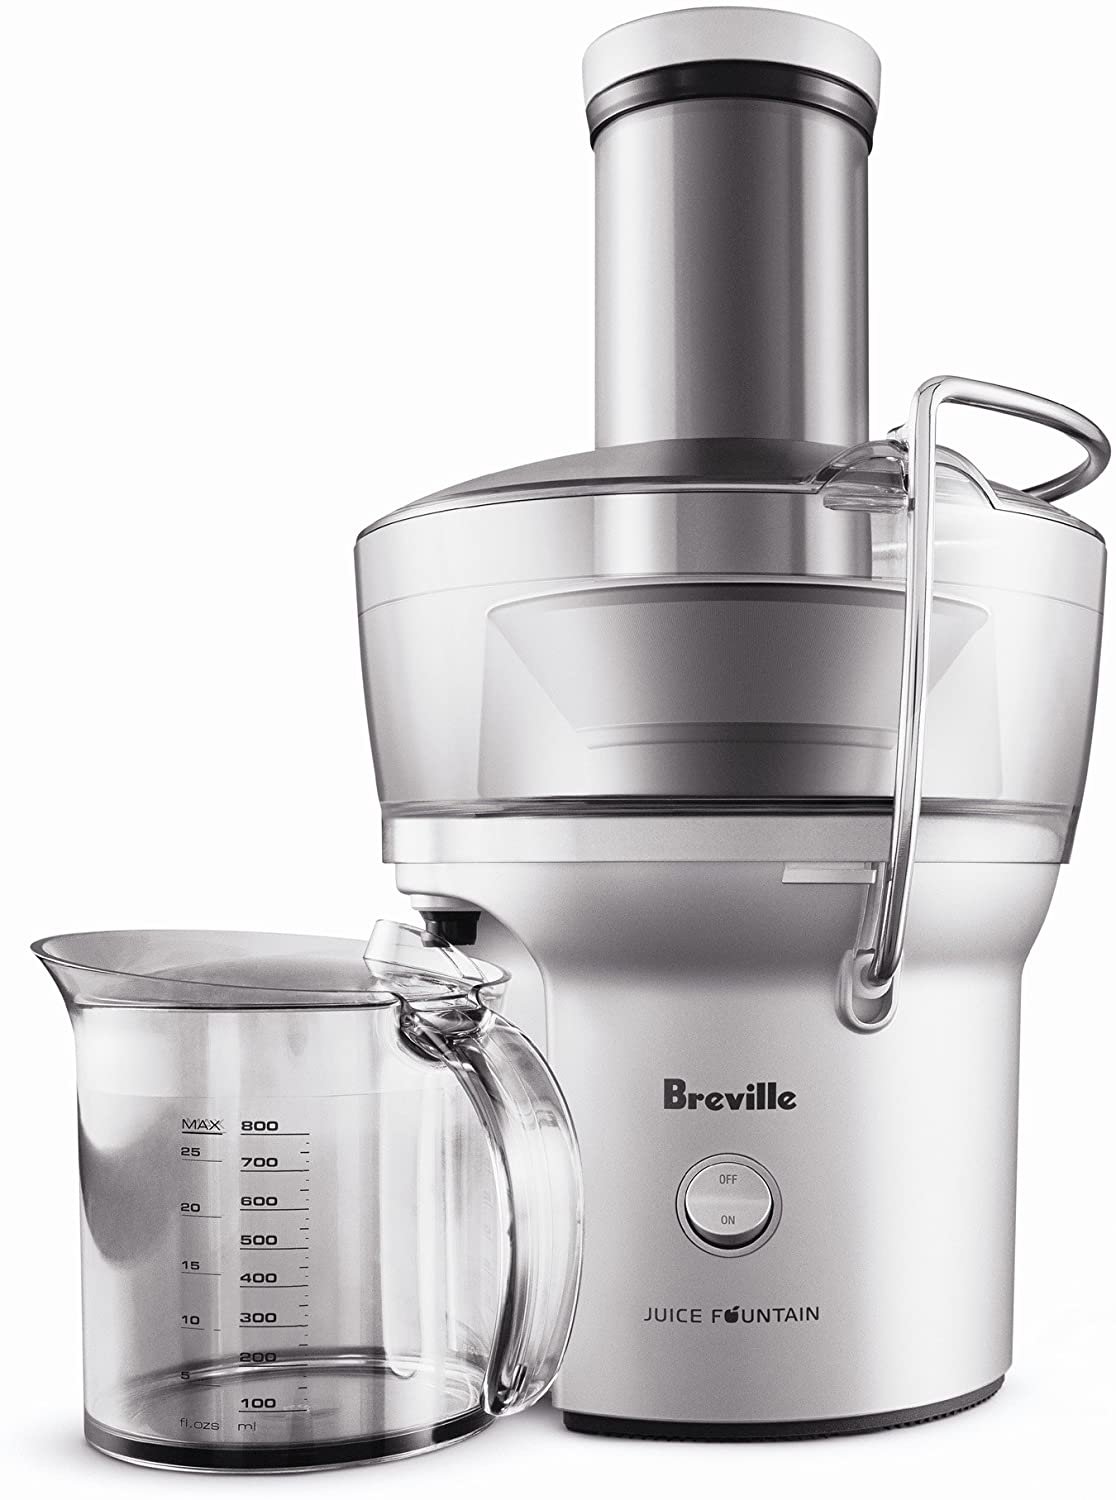 Breville BJE200XL Silver Juice Fountain, Compact Centrifugal Juicer